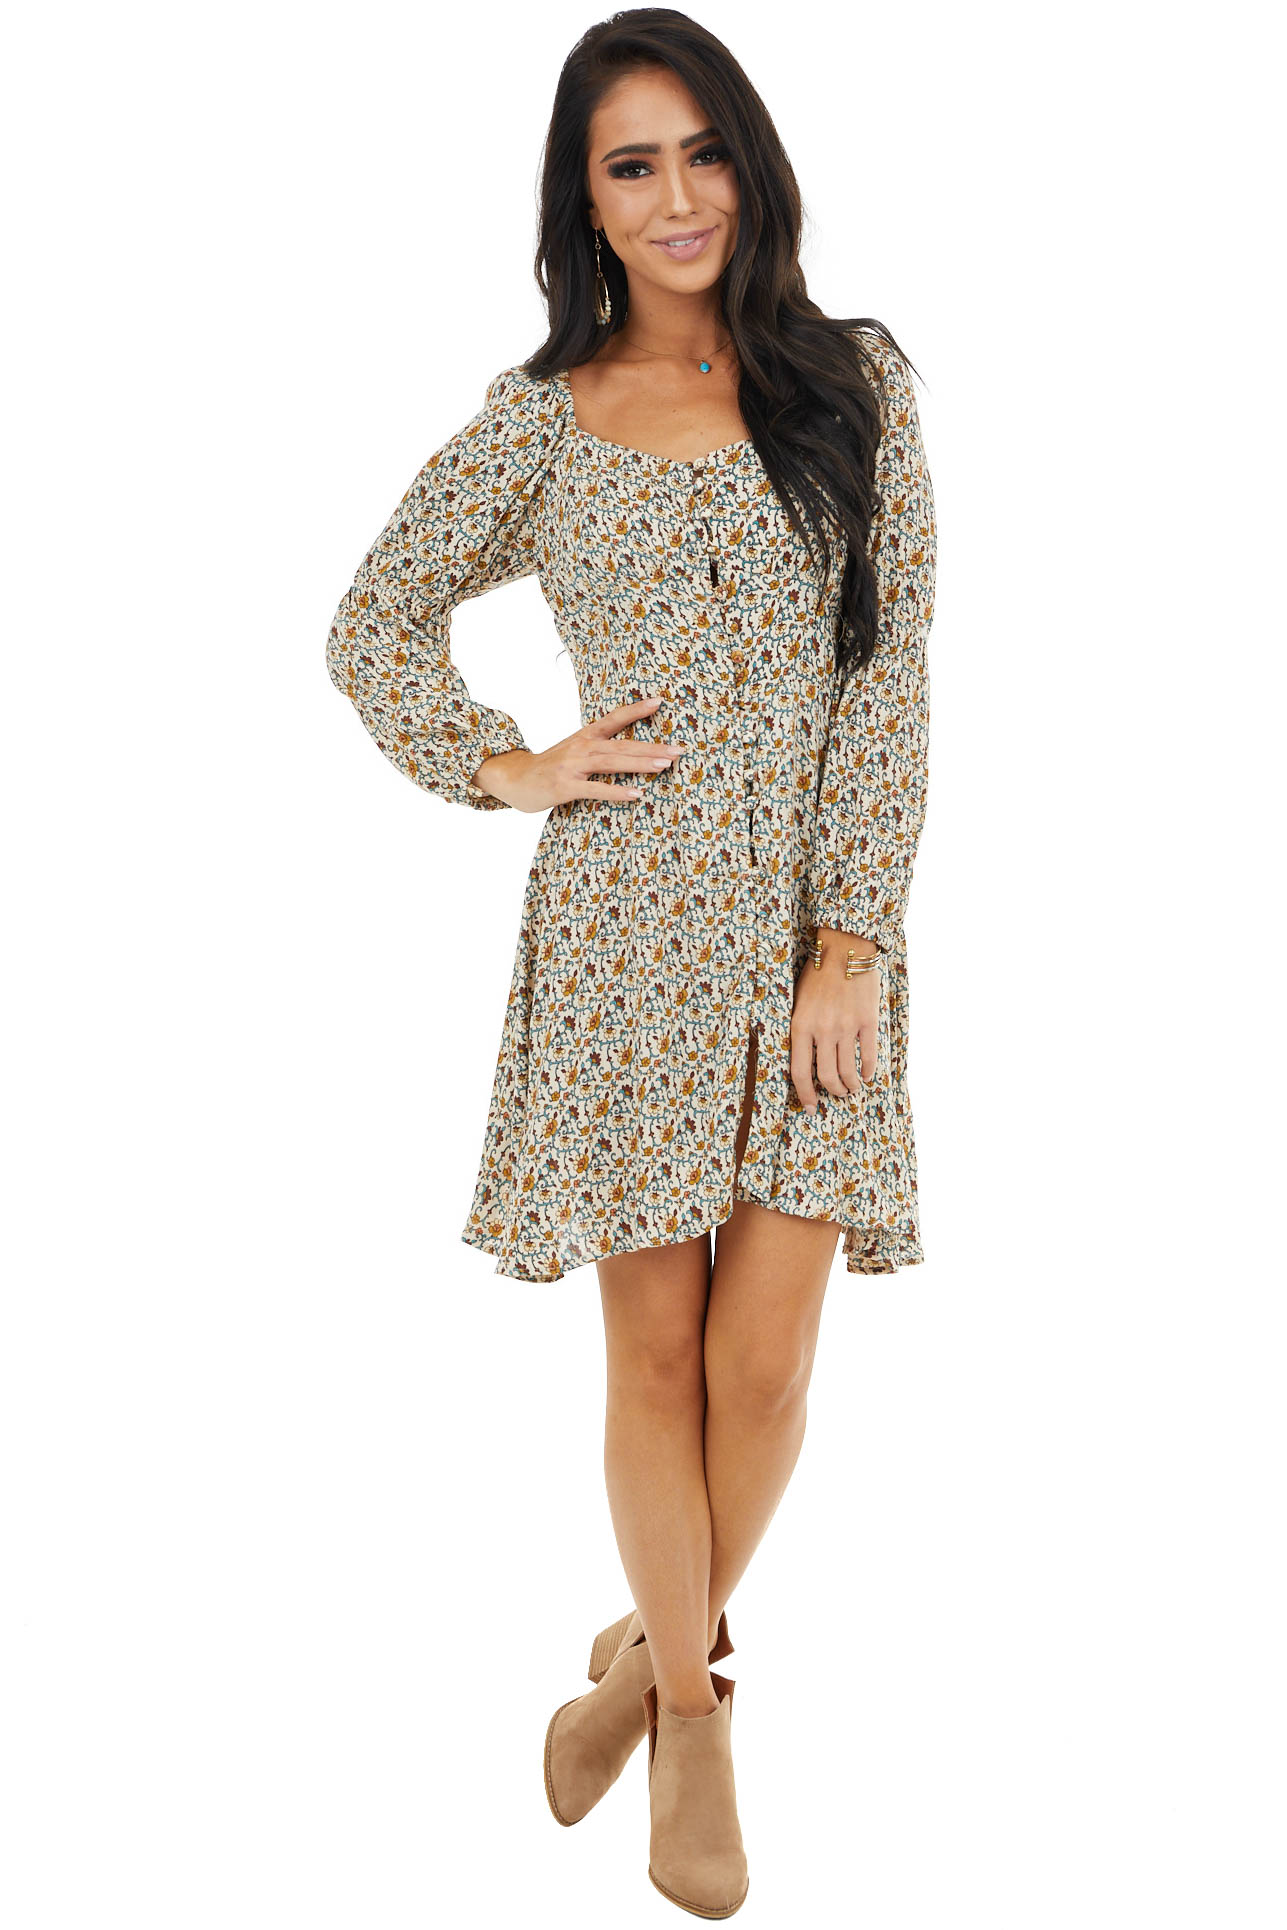 Cream Floral Print Mini Dress with Button Up Front